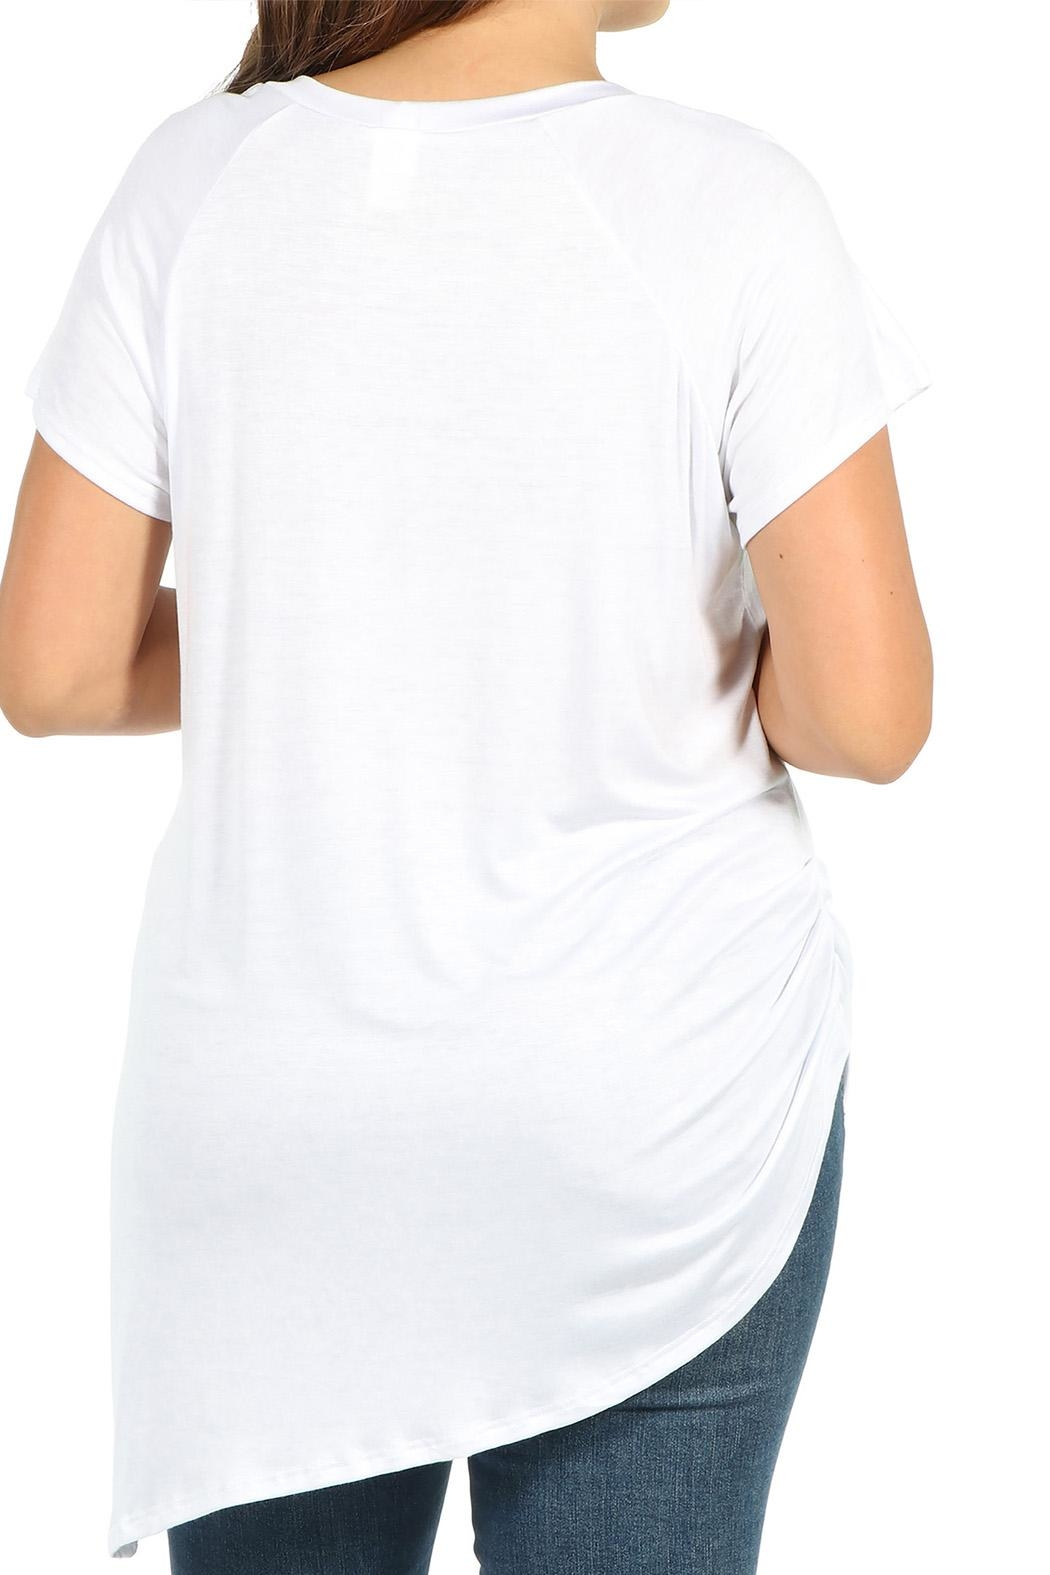 24/7 Comfort Apparel Plus Asymmetric Tee - Side Cropped Image